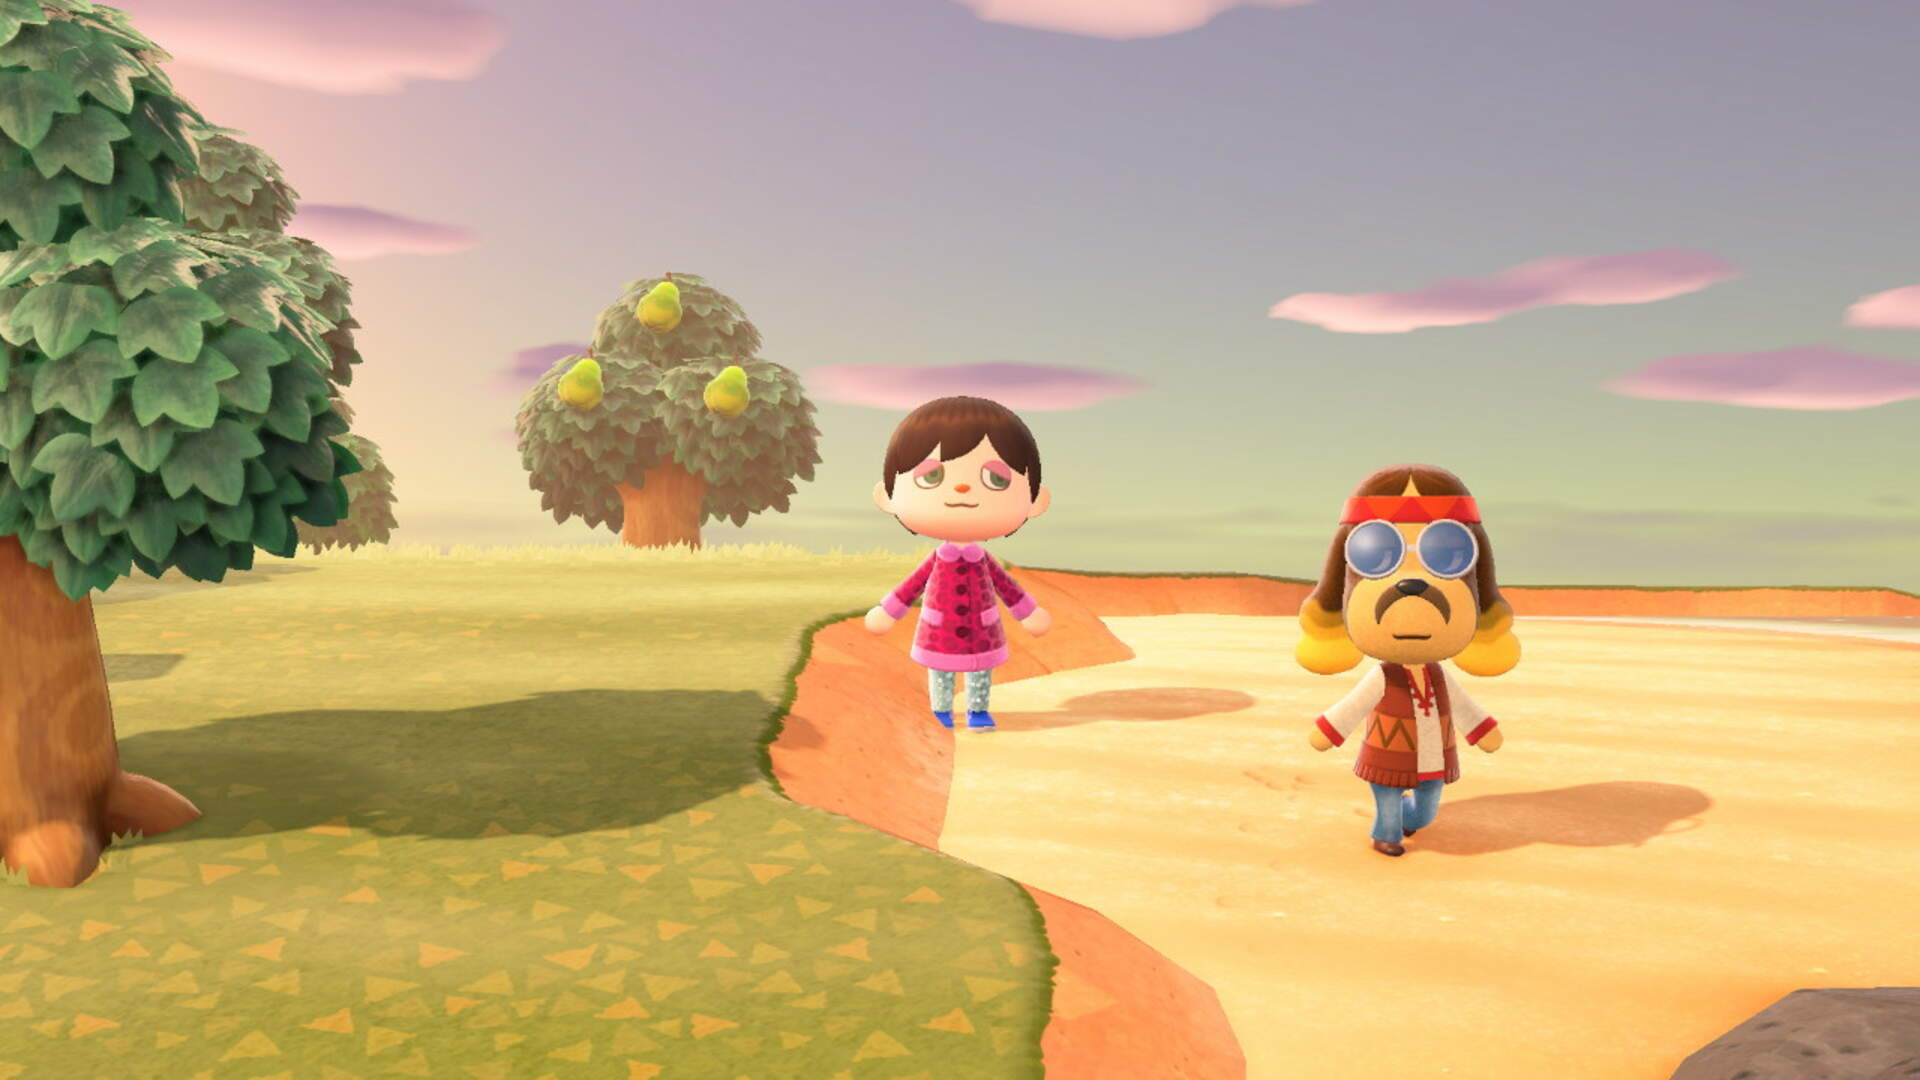 Here's a Mariah Carey Music Video Recreated in Animal Crossing: New Horizons' Photopia